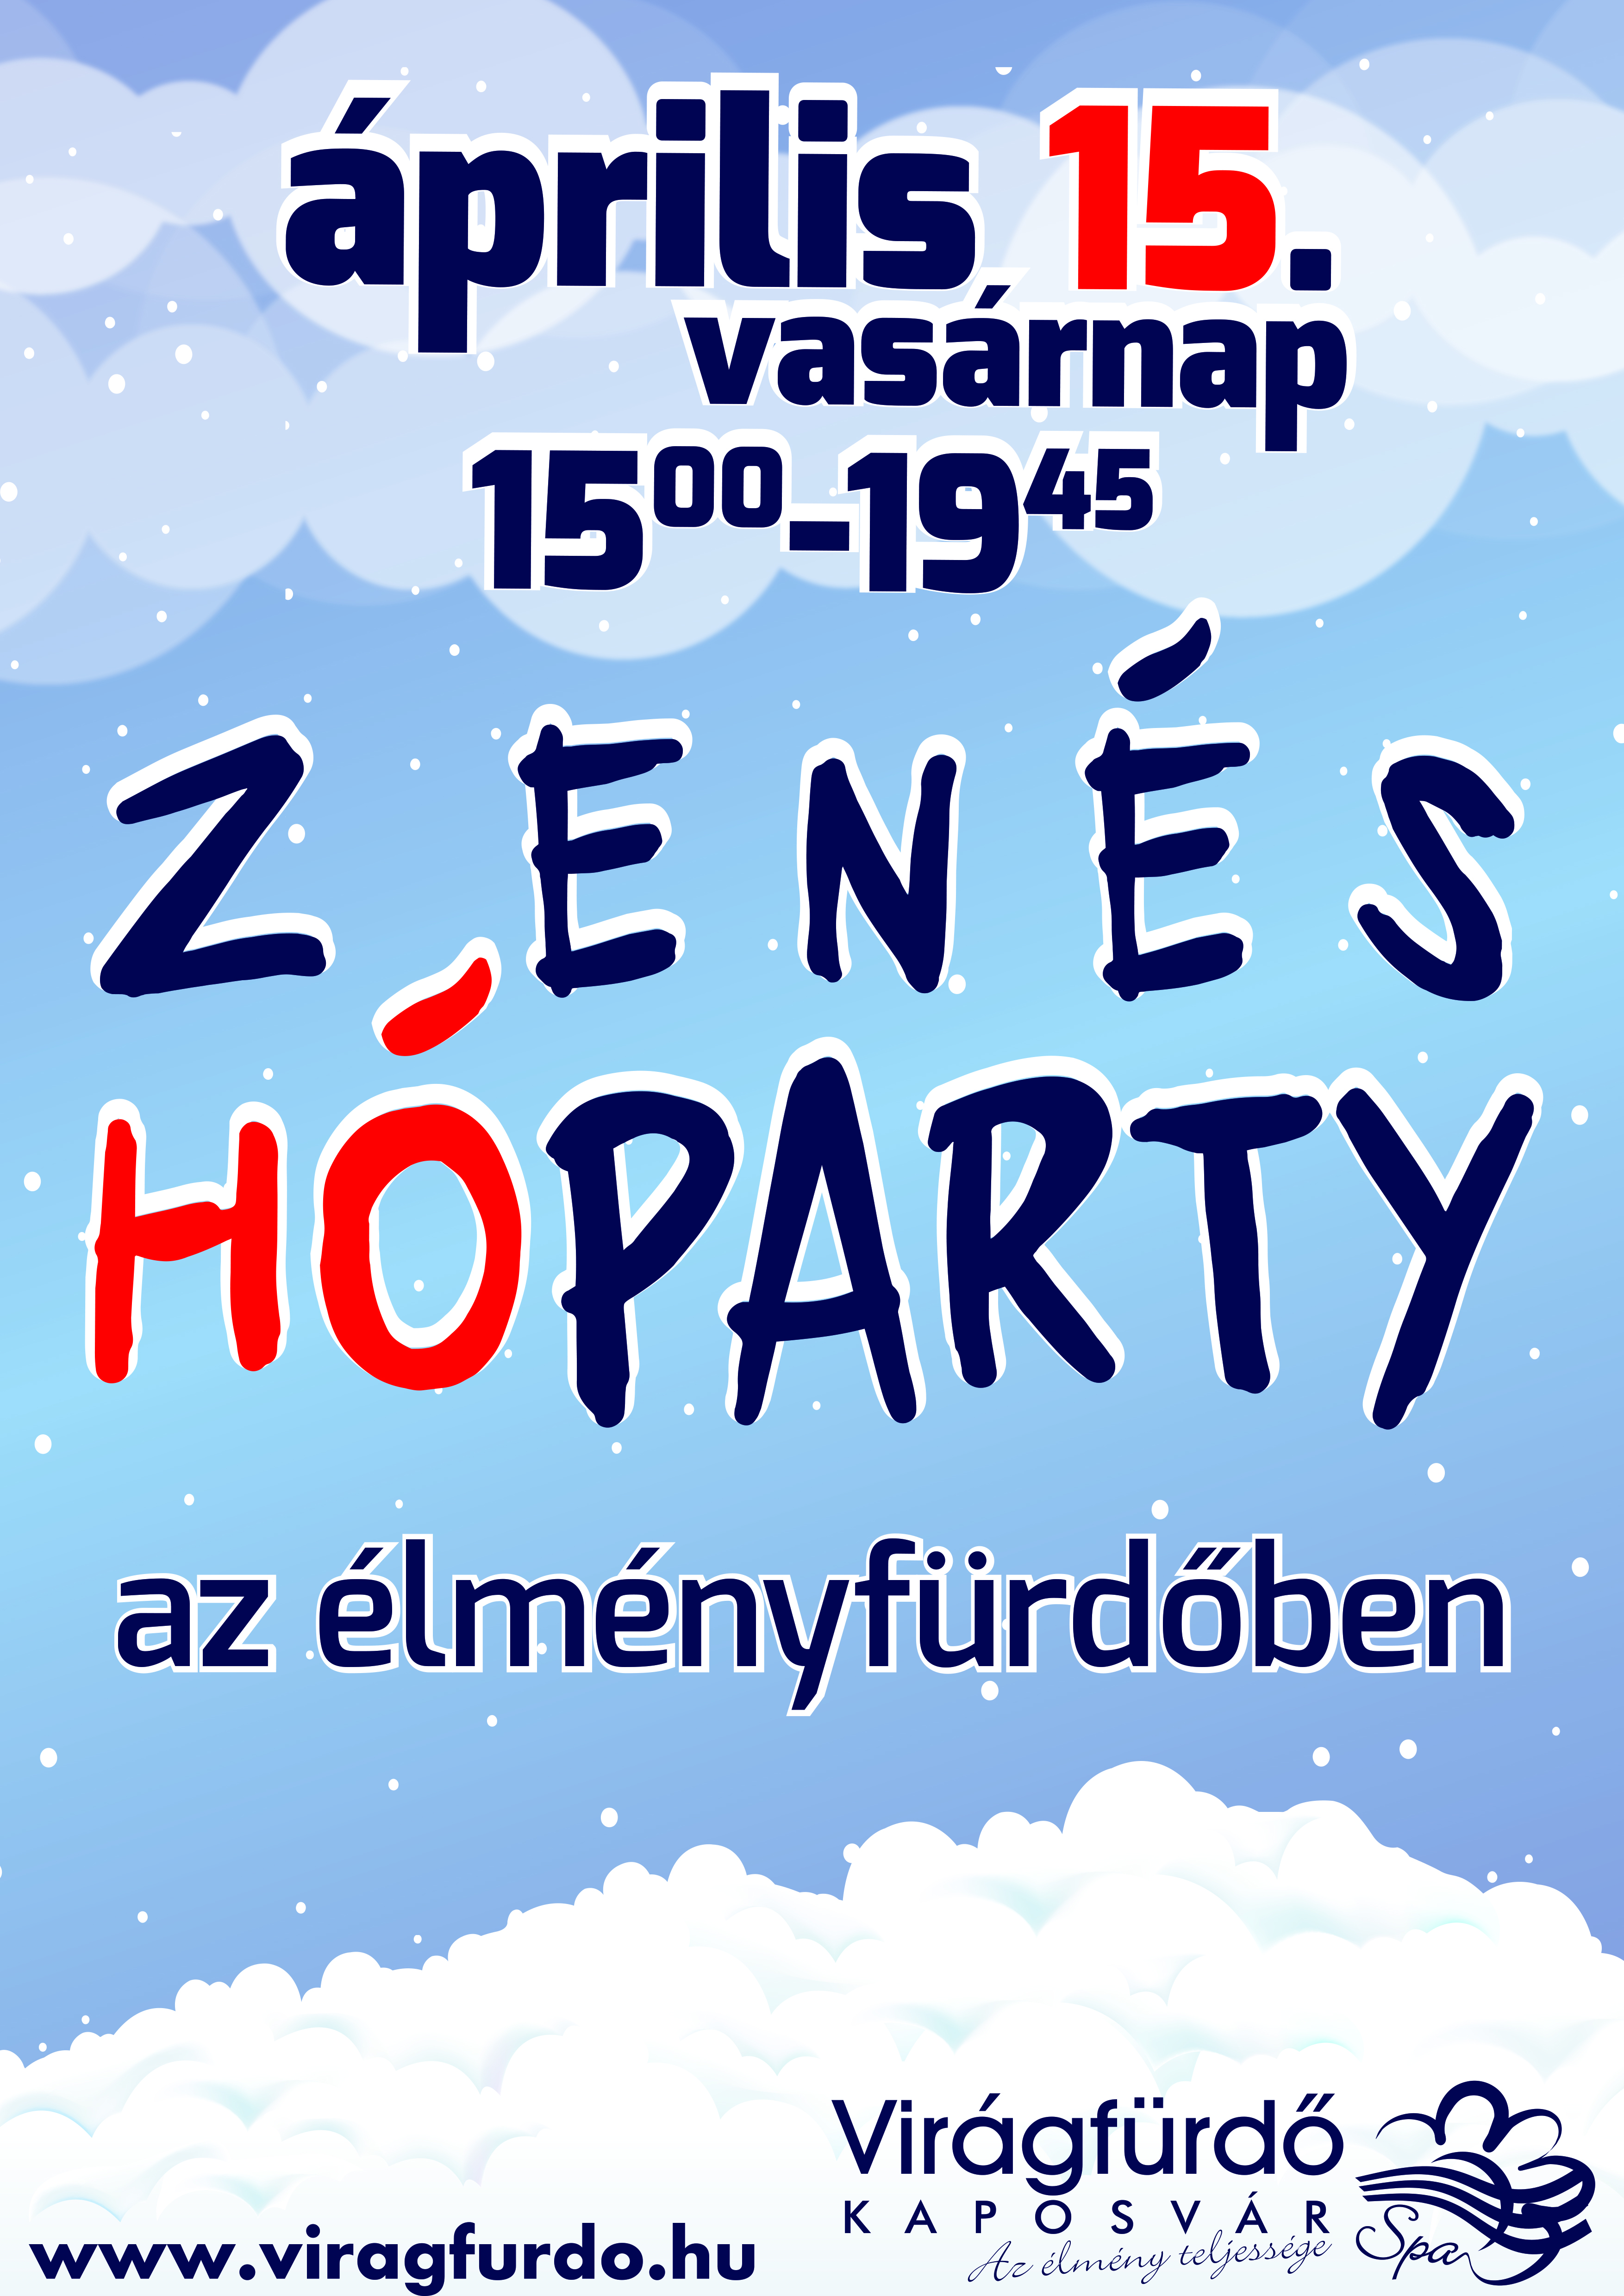 hóparty.jpg